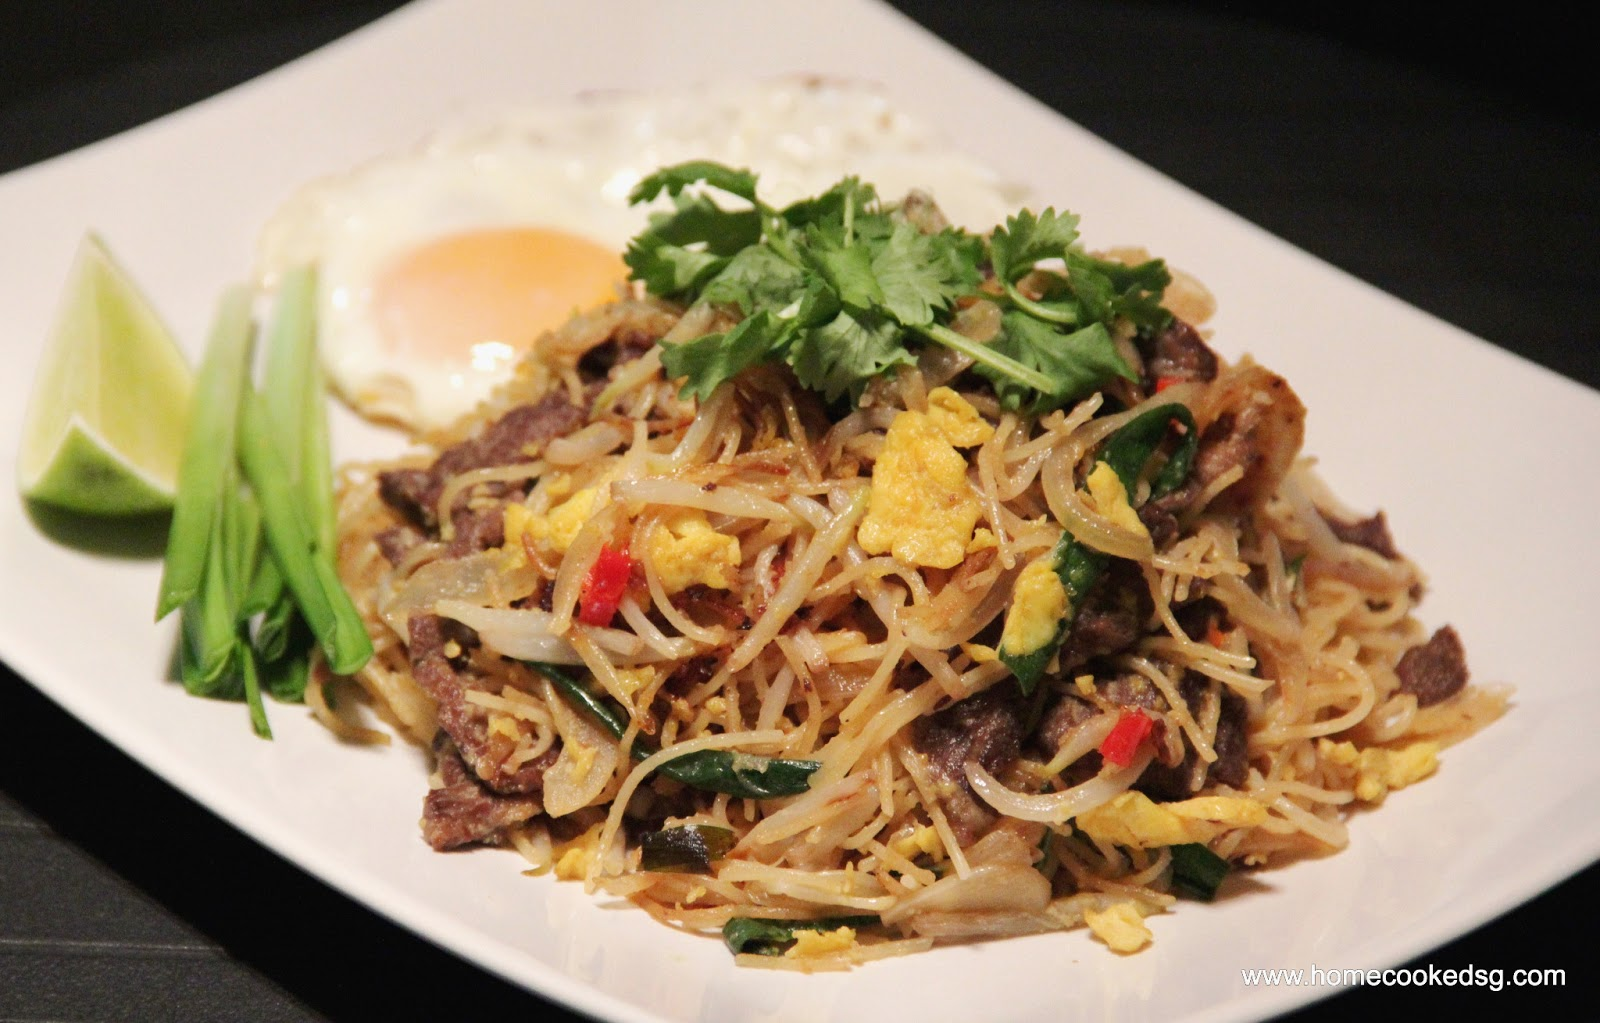 Stir-fry Noodles with Beef - Thai style